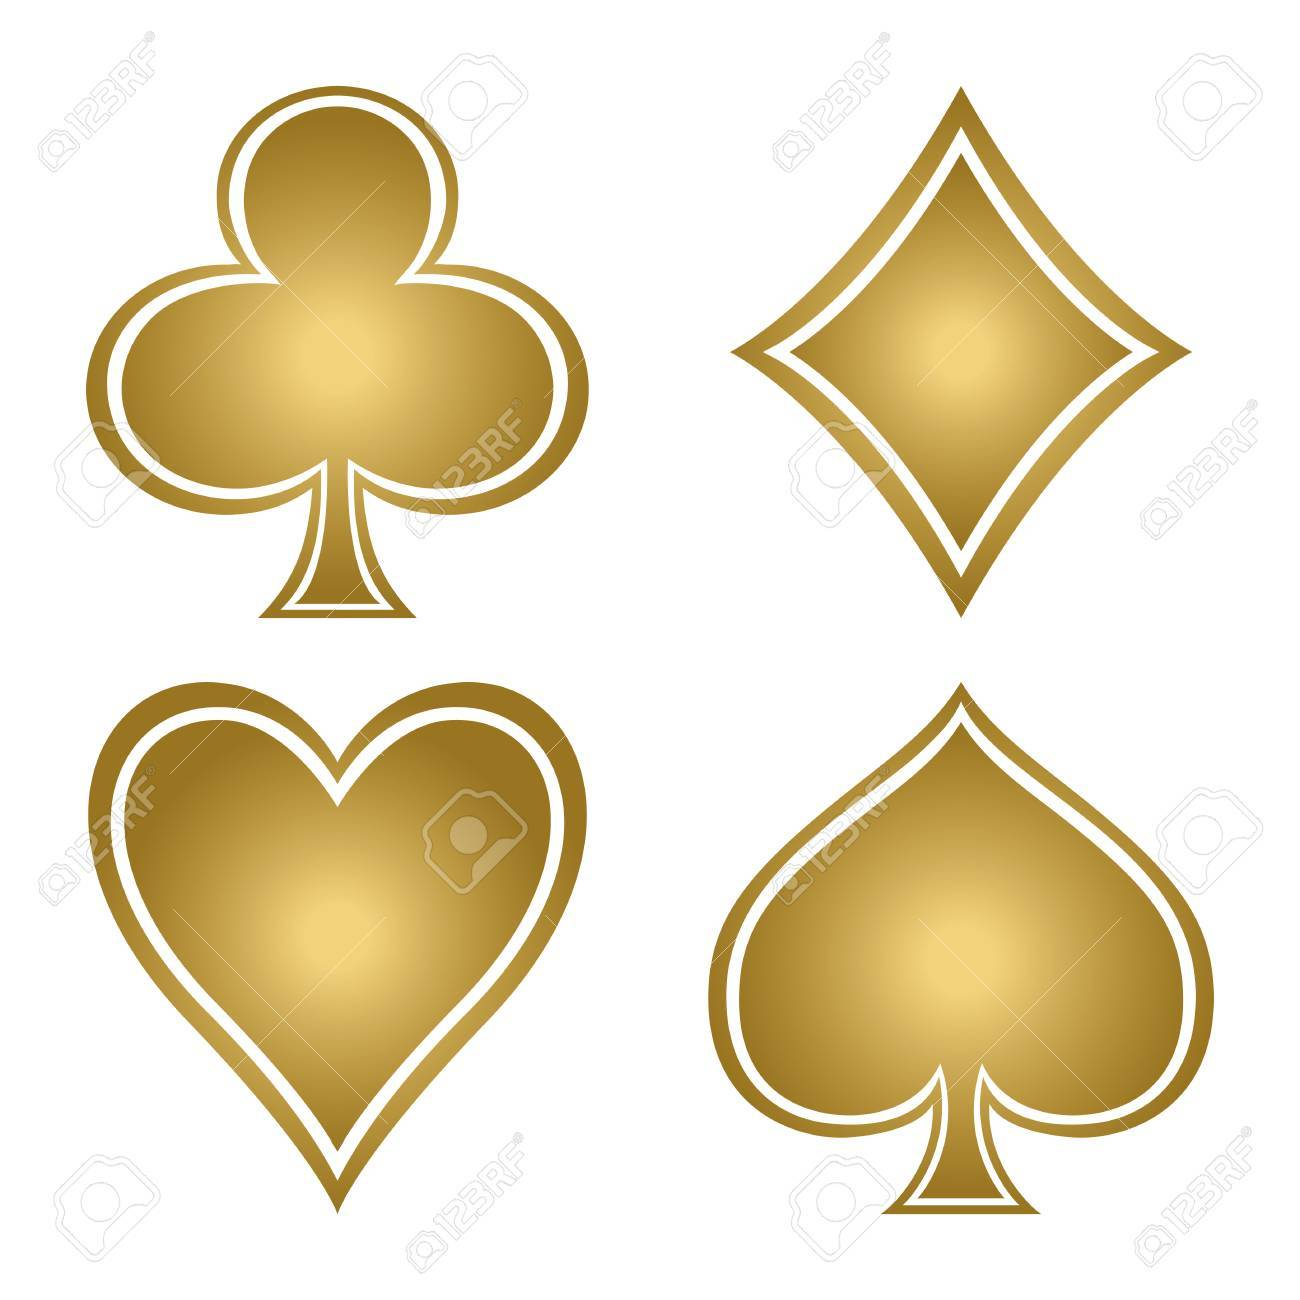 gold spade card  Set with gold suits of playing cards. Club, diamond, spade, heart.